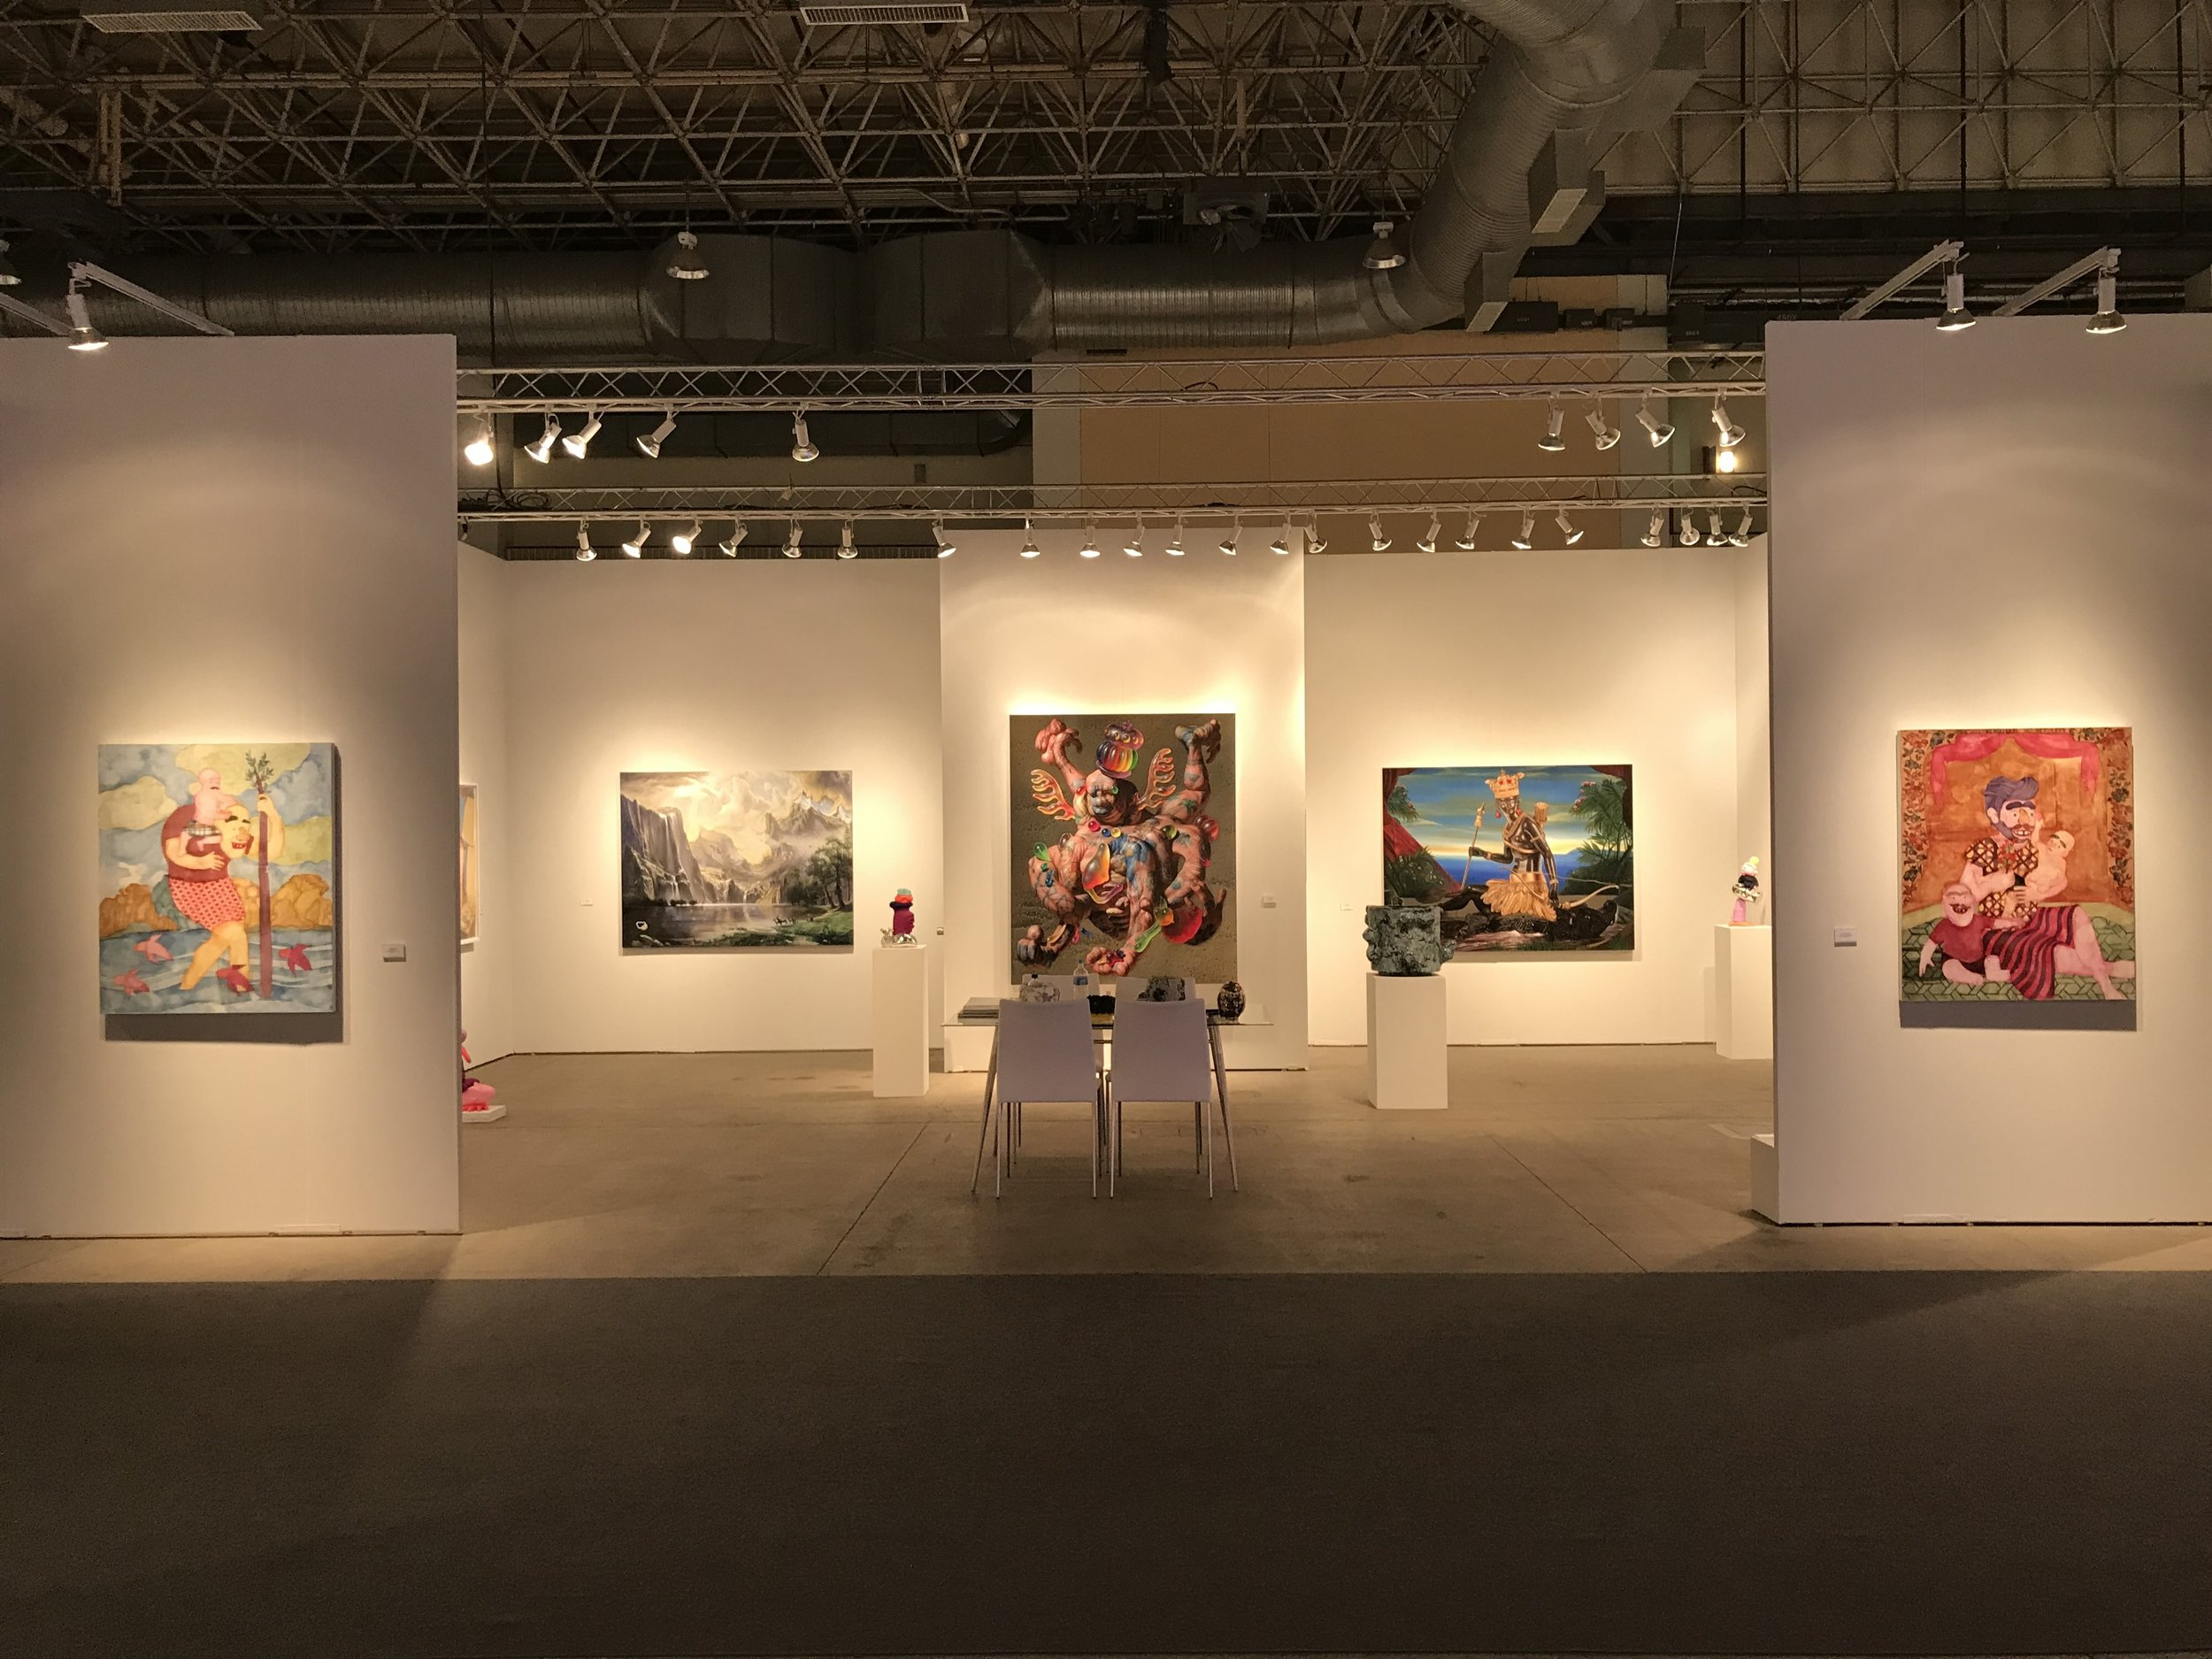 Installation view of Richard Heller Gallery booth at EXPO Chicago, 2018. Image courtesy of the gallery.